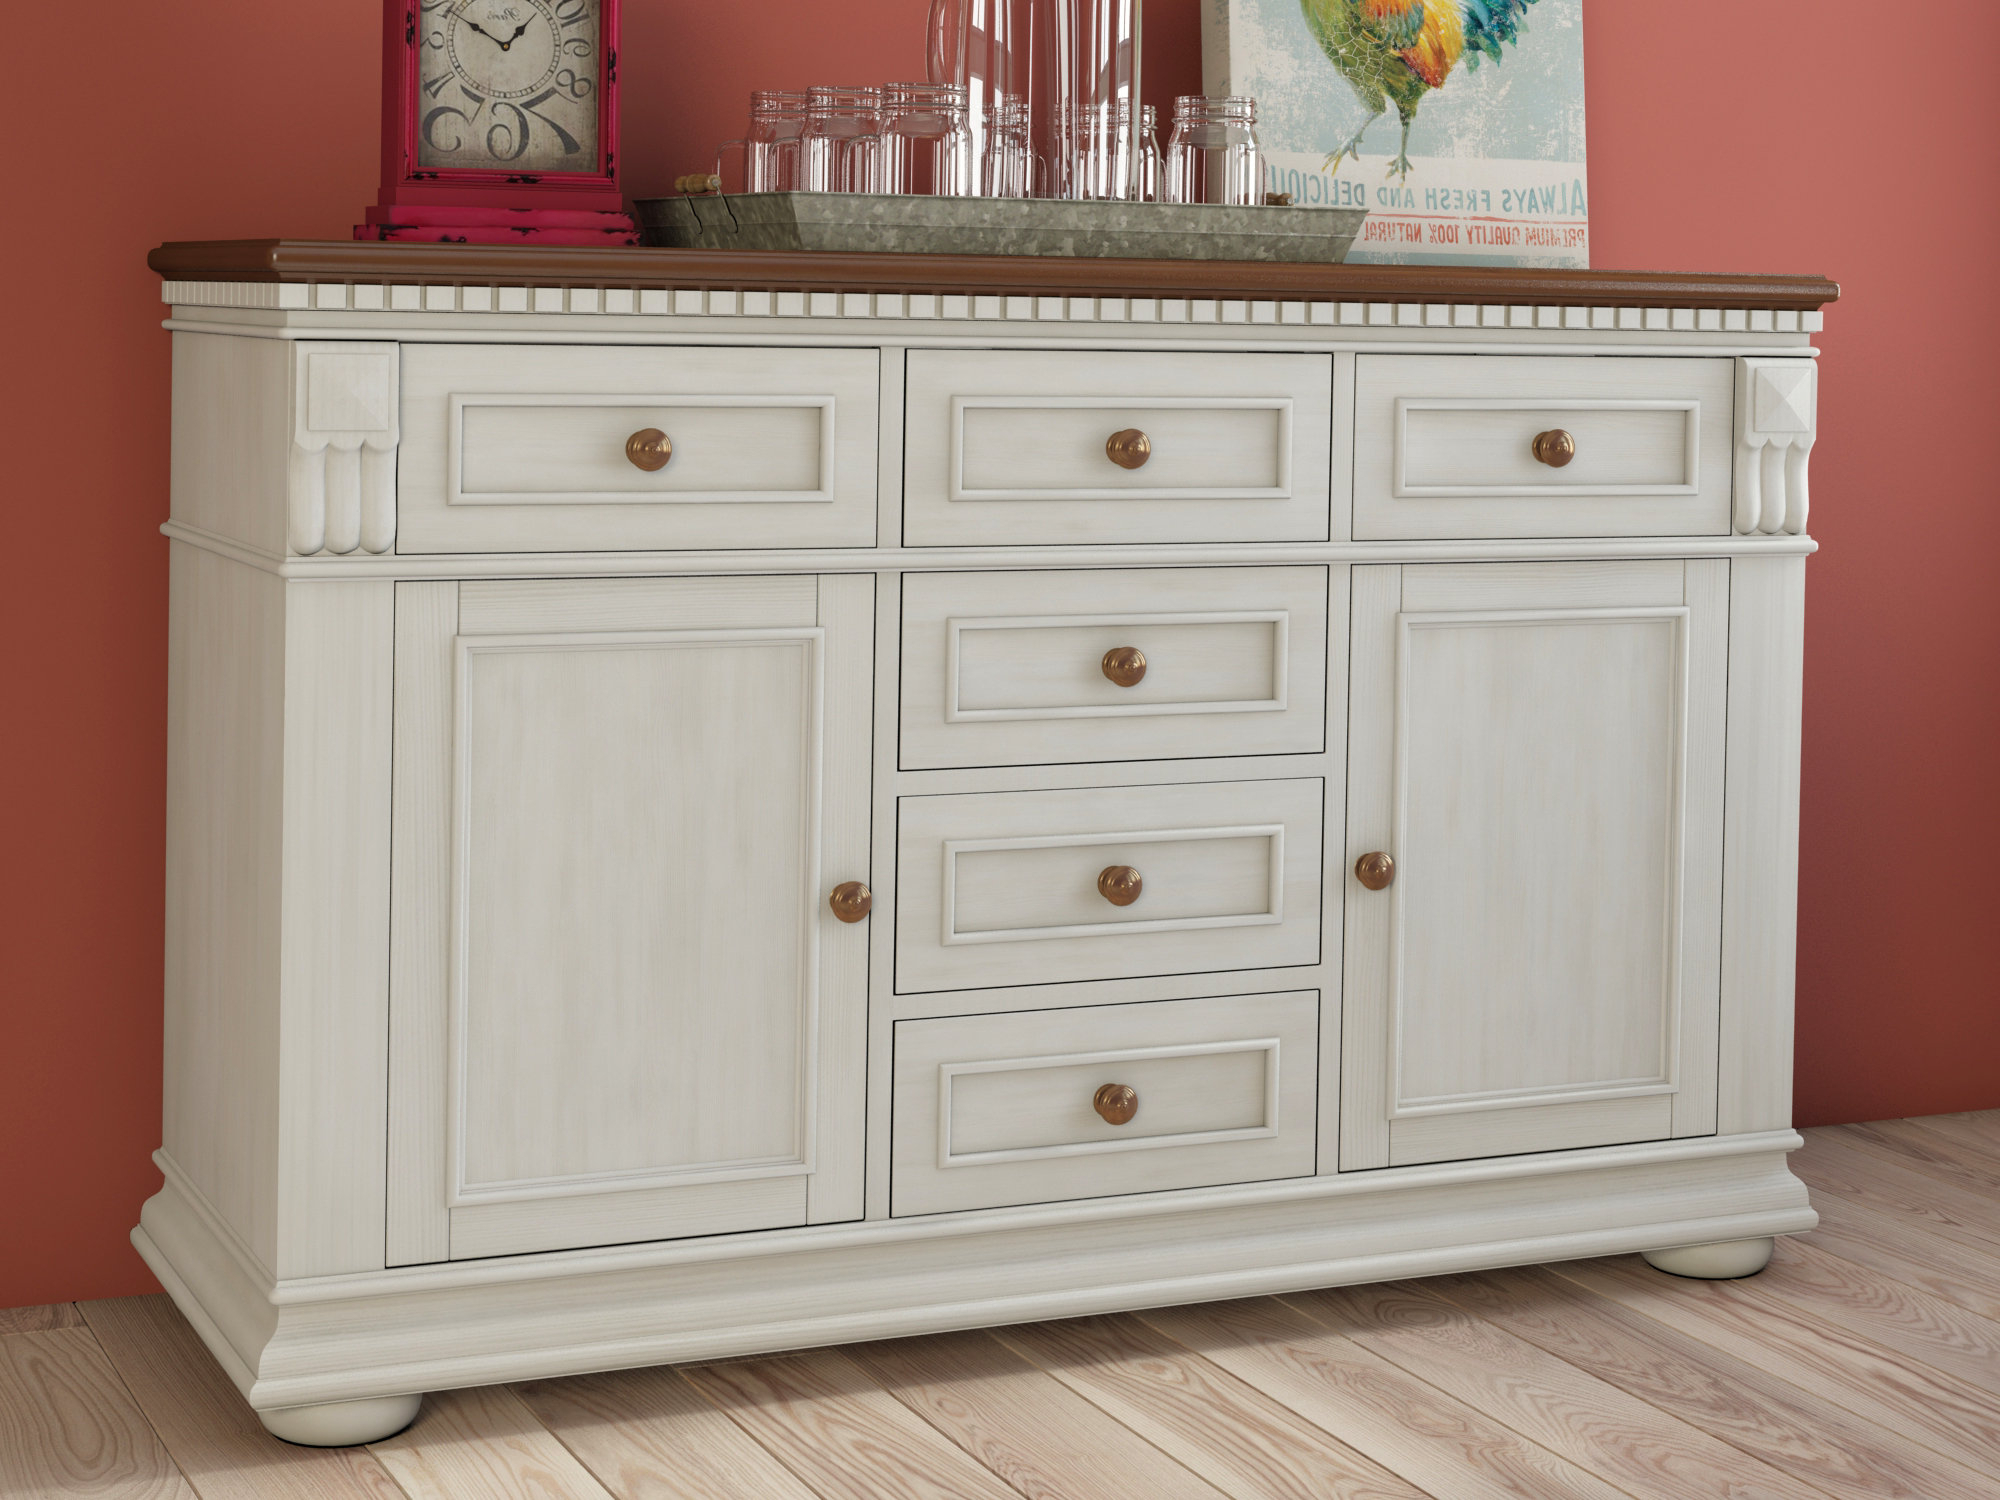 Farmhouse & Rustic Darby Home Co Sideboards & Buffets Throughout Phyllis Sideboards (View 18 of 20)